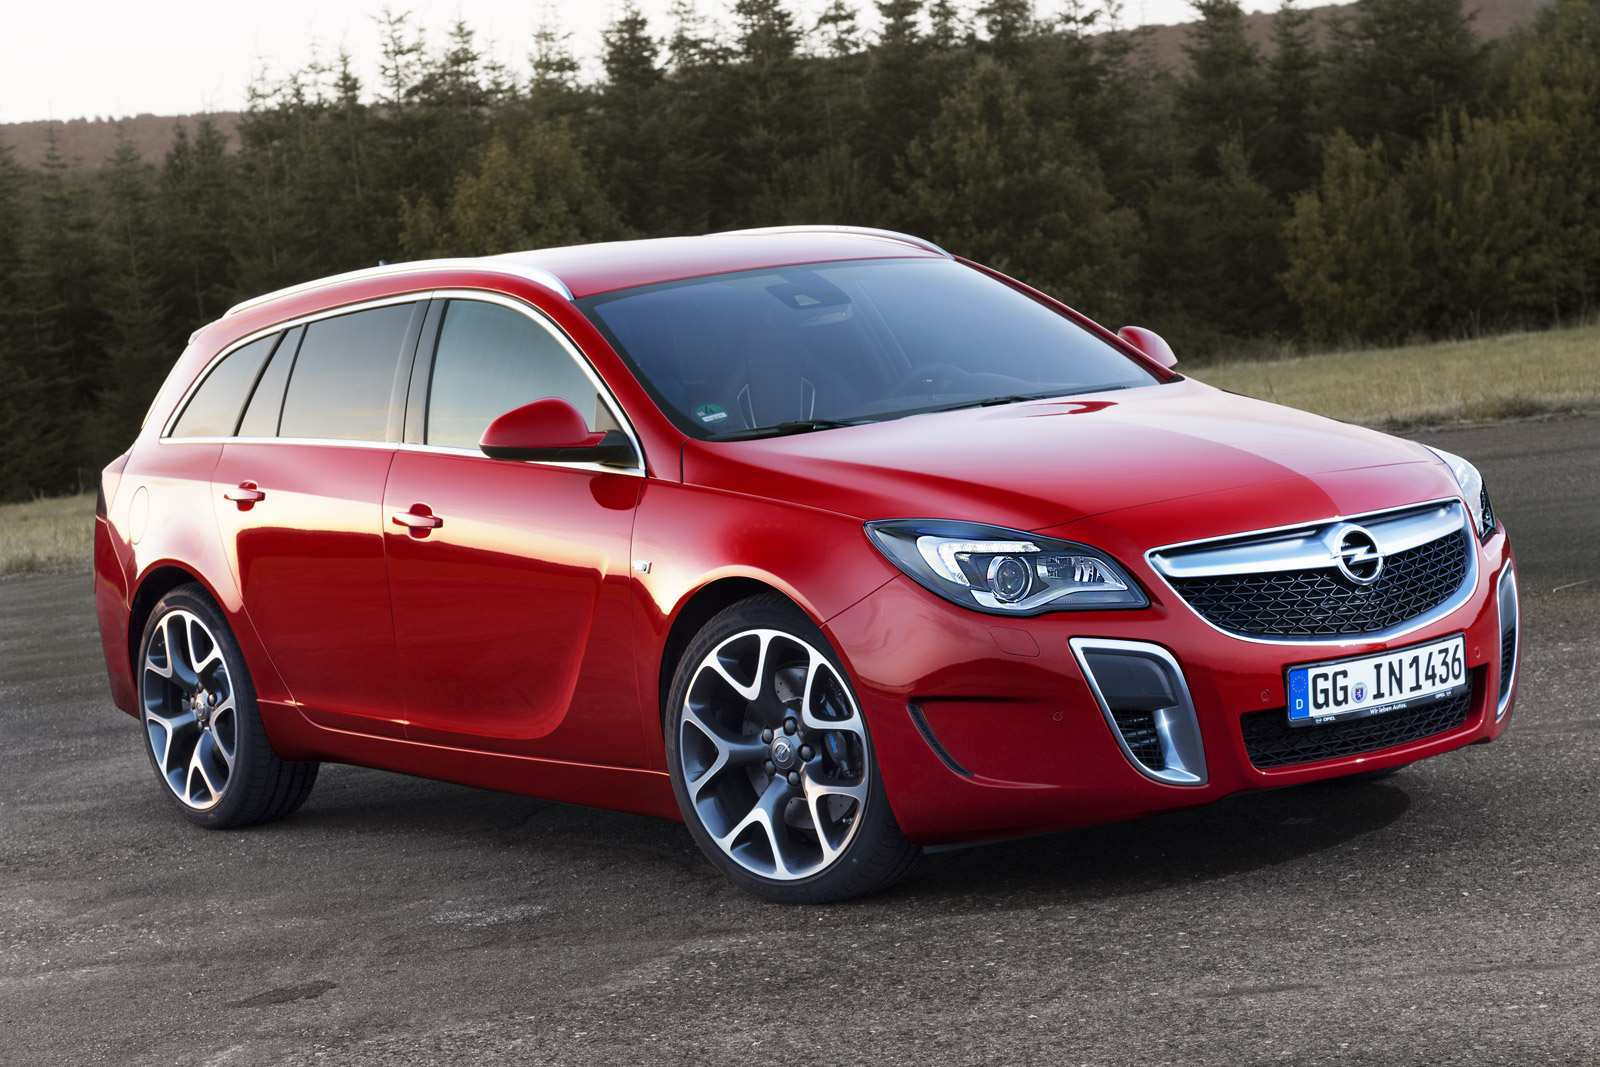 38 All New Opel Insignia Opc 2020 Redesign and Concept for Opel Insignia Opc 2020